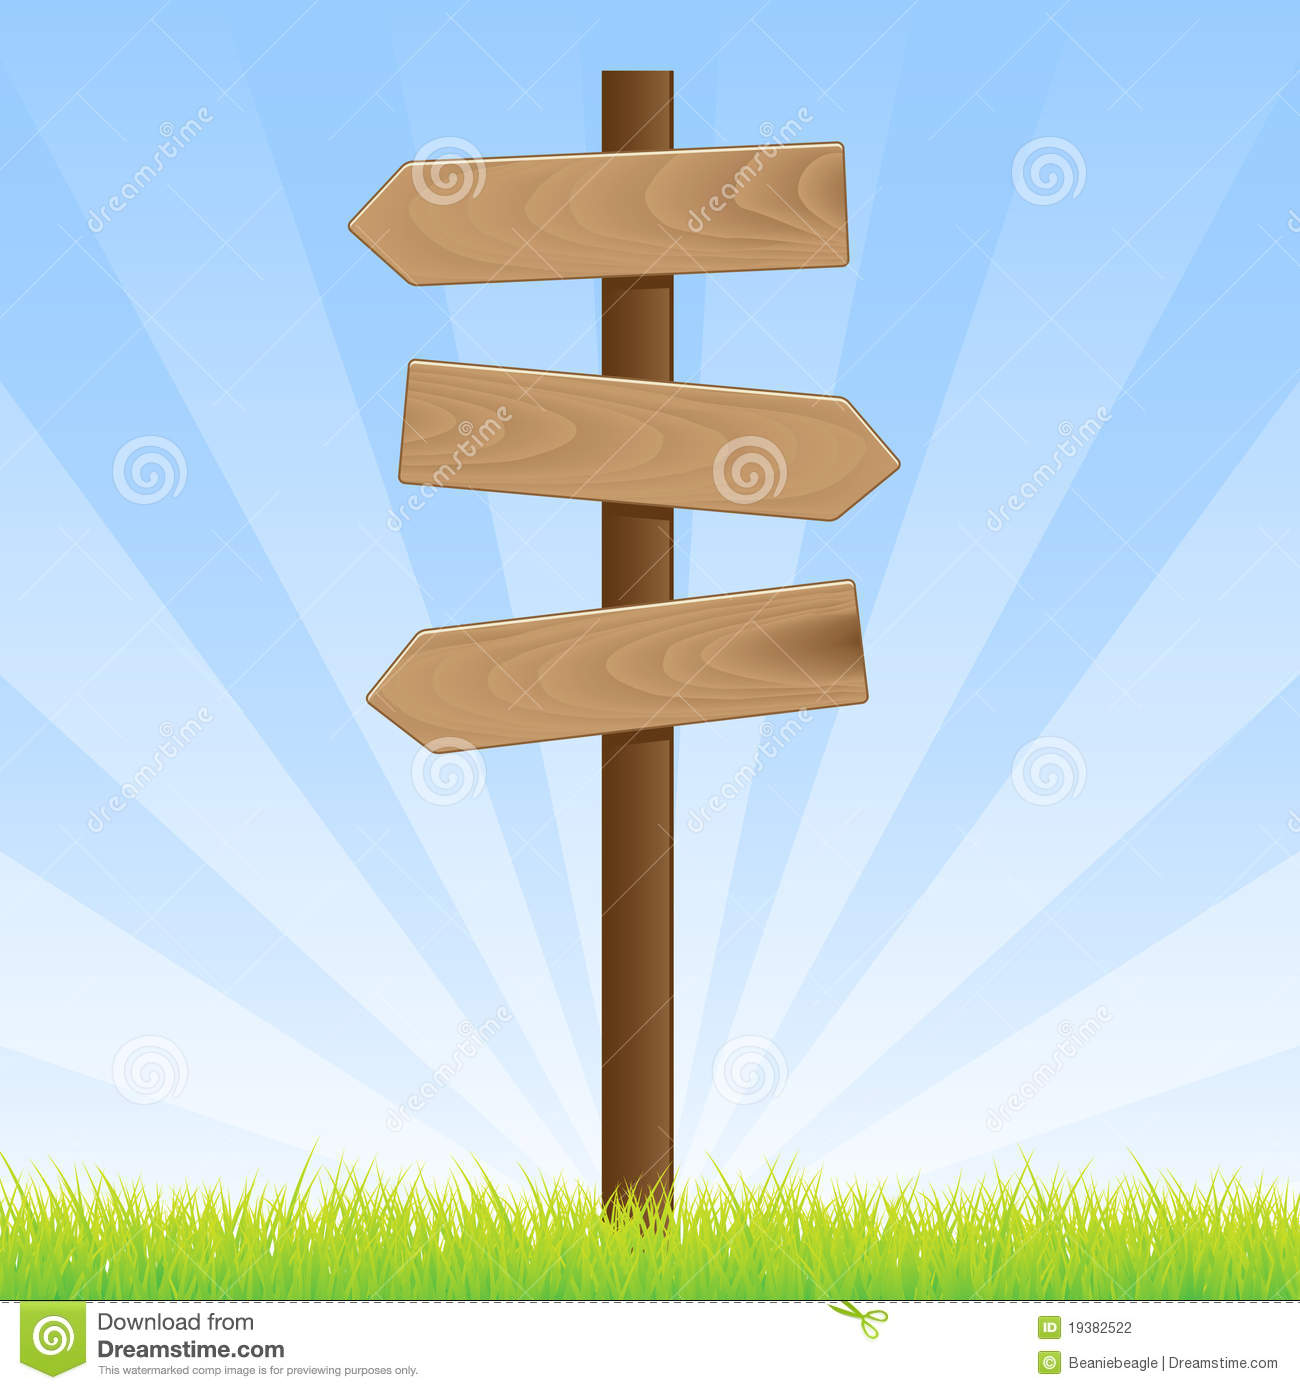 Road sign pole clipart.